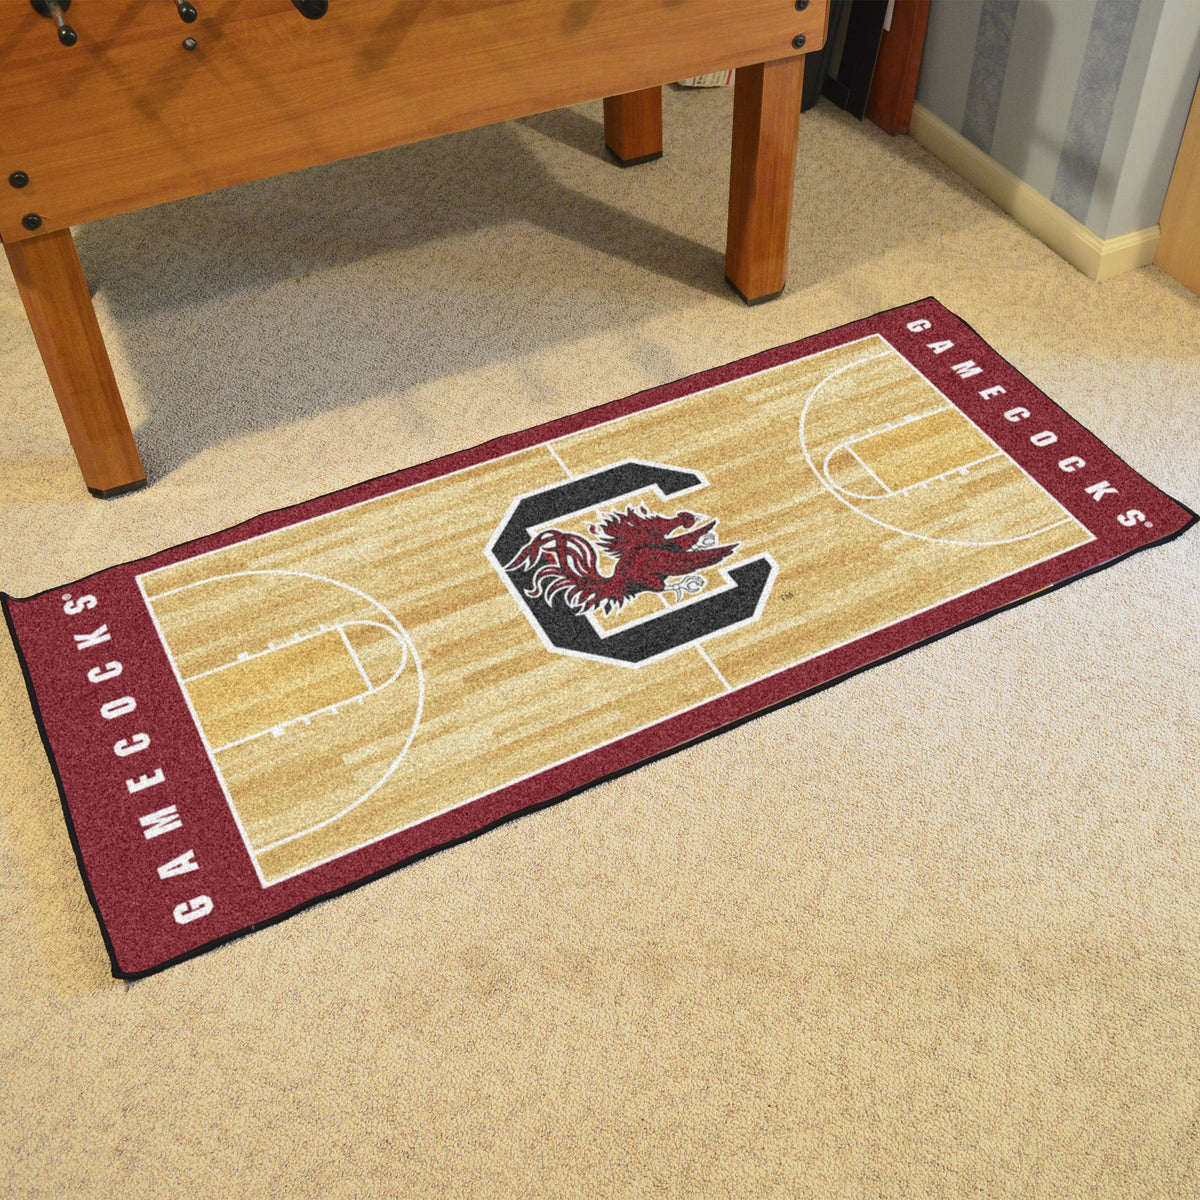 Collegiate - NCAA Basketball Runner Collegiate Mats, Rectangular Mats, NCAA Basketball Runner, Collegiate, Home Fan Mats South Carolina